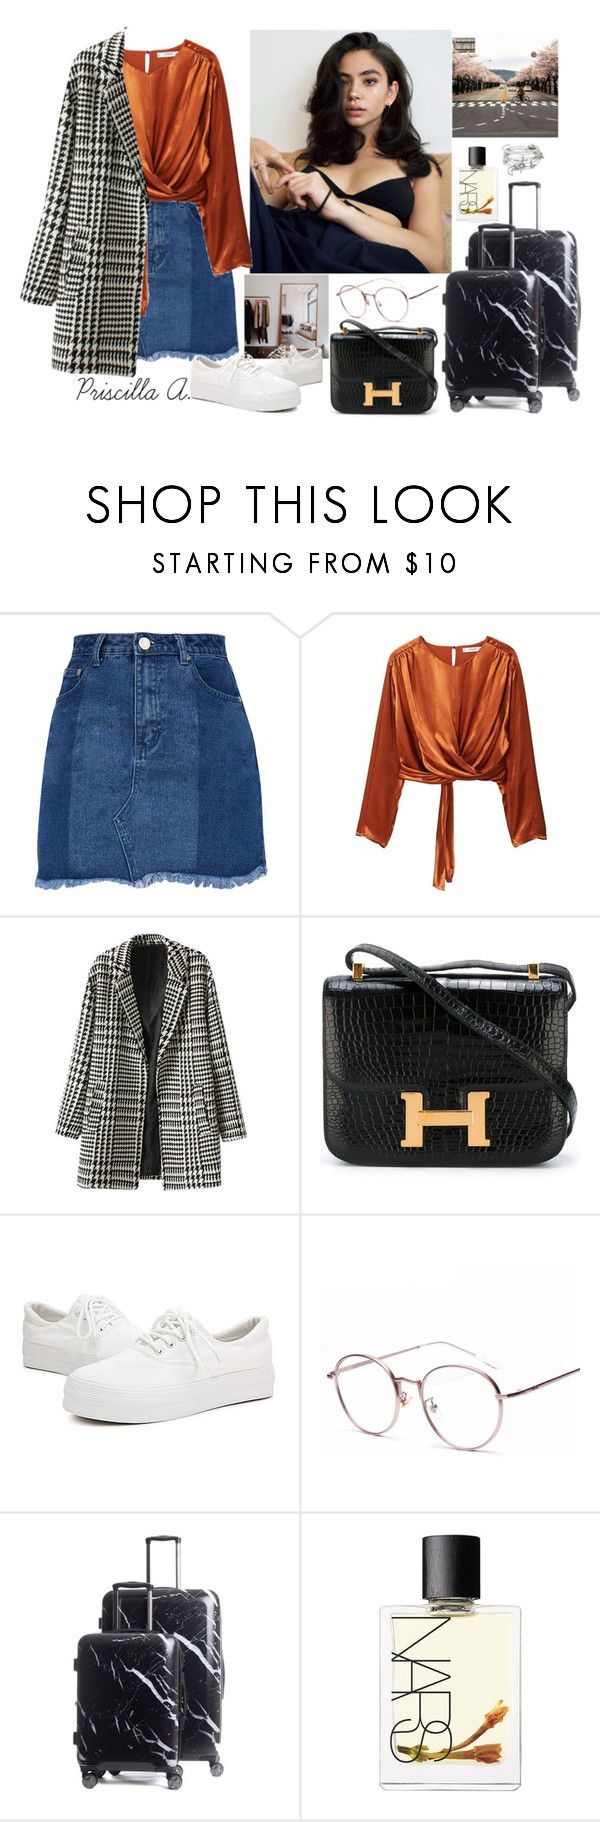 """""""Trivial Korea, Last Day(안녕)"""" by priscillaanakwah ❤ liked on Polyvore featuring MANGO, Hermès, CalPak, NARS Cosmetics and Alex and Ani"""